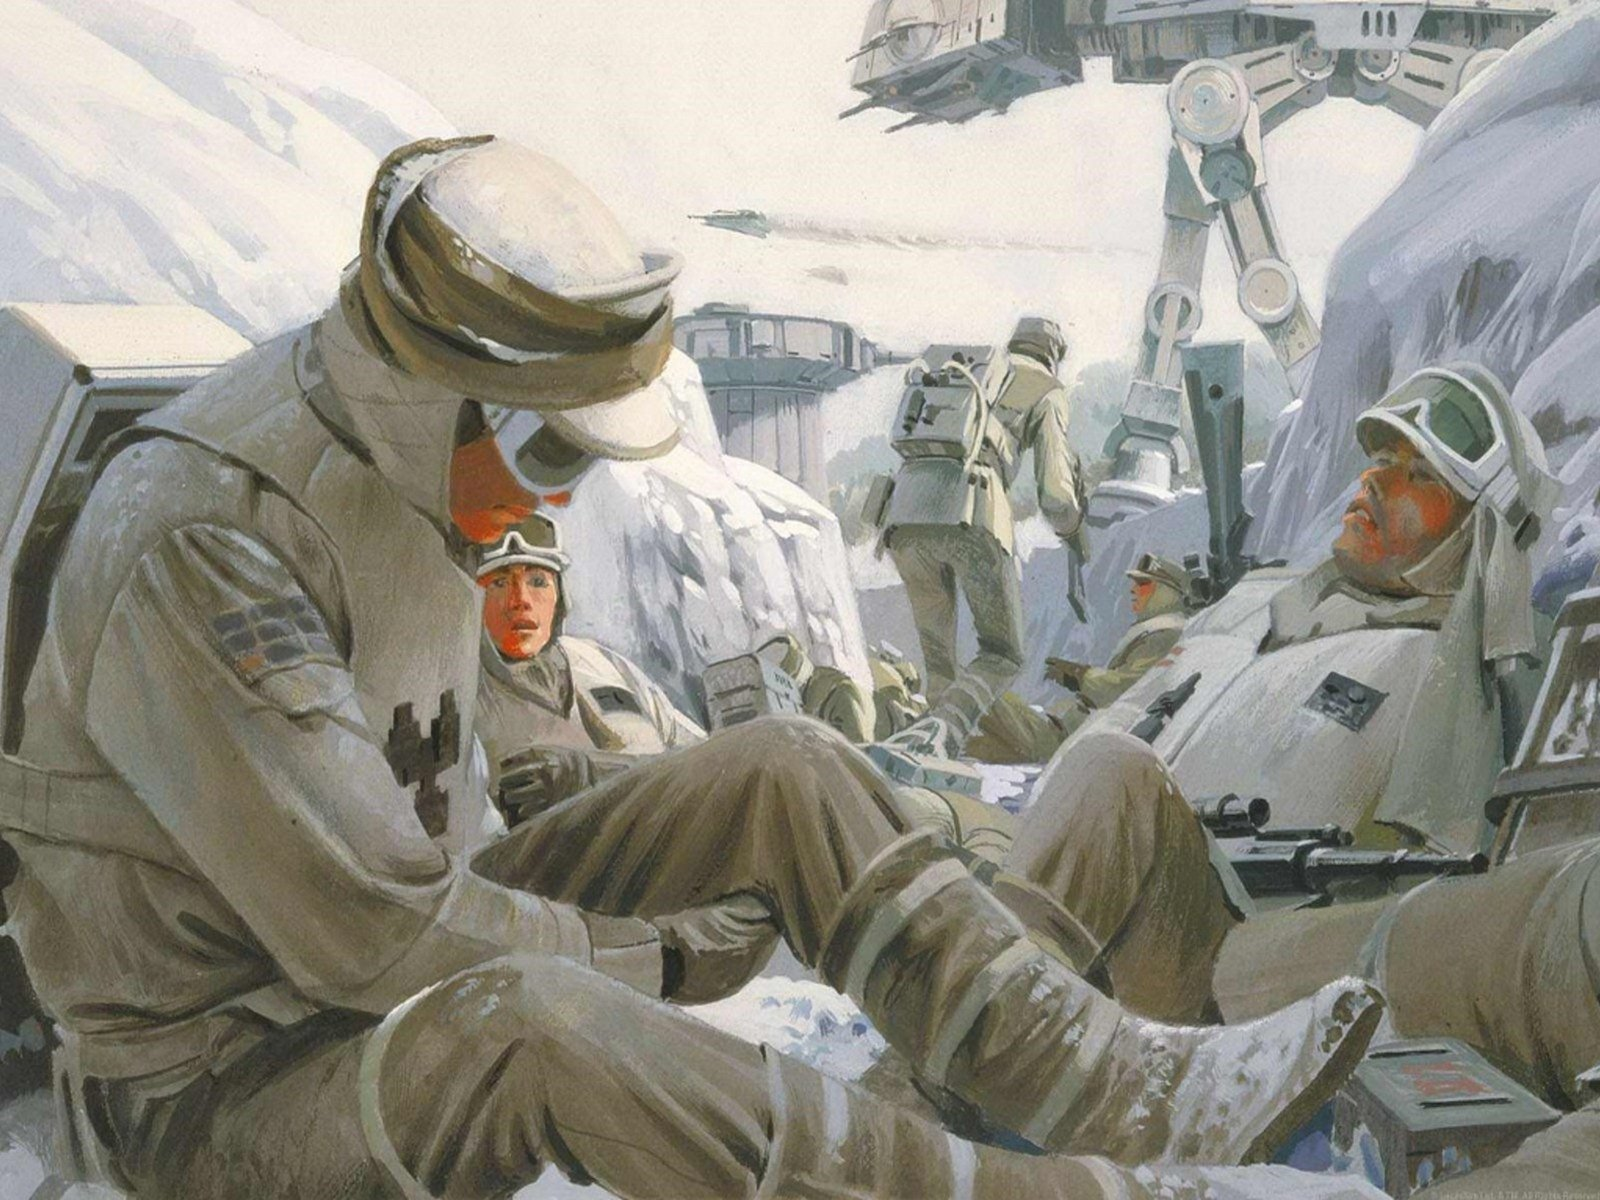 14 Hoth Star Wars Hd Wallpapers Background Images Wallpaper Abyss